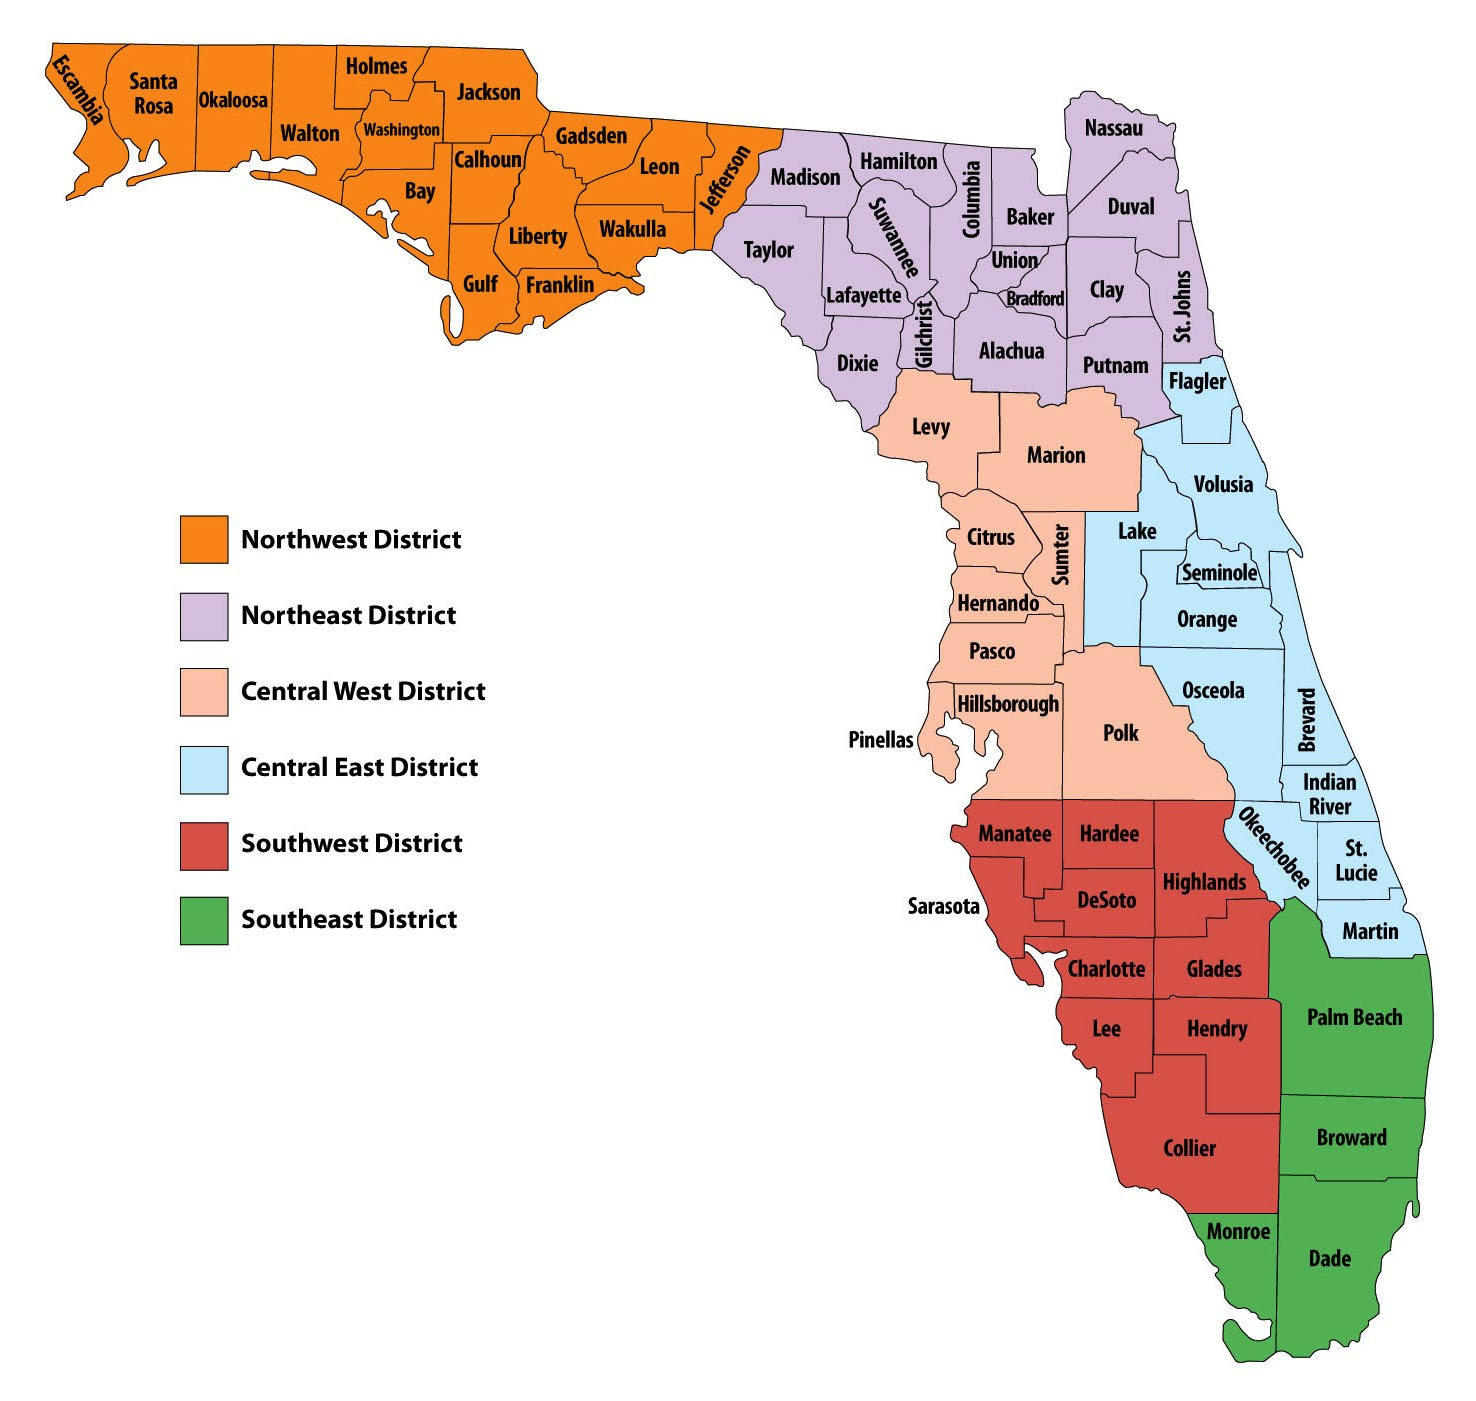 UNF COAS Political Science Public Administration Florida - Map of florida counties and cities